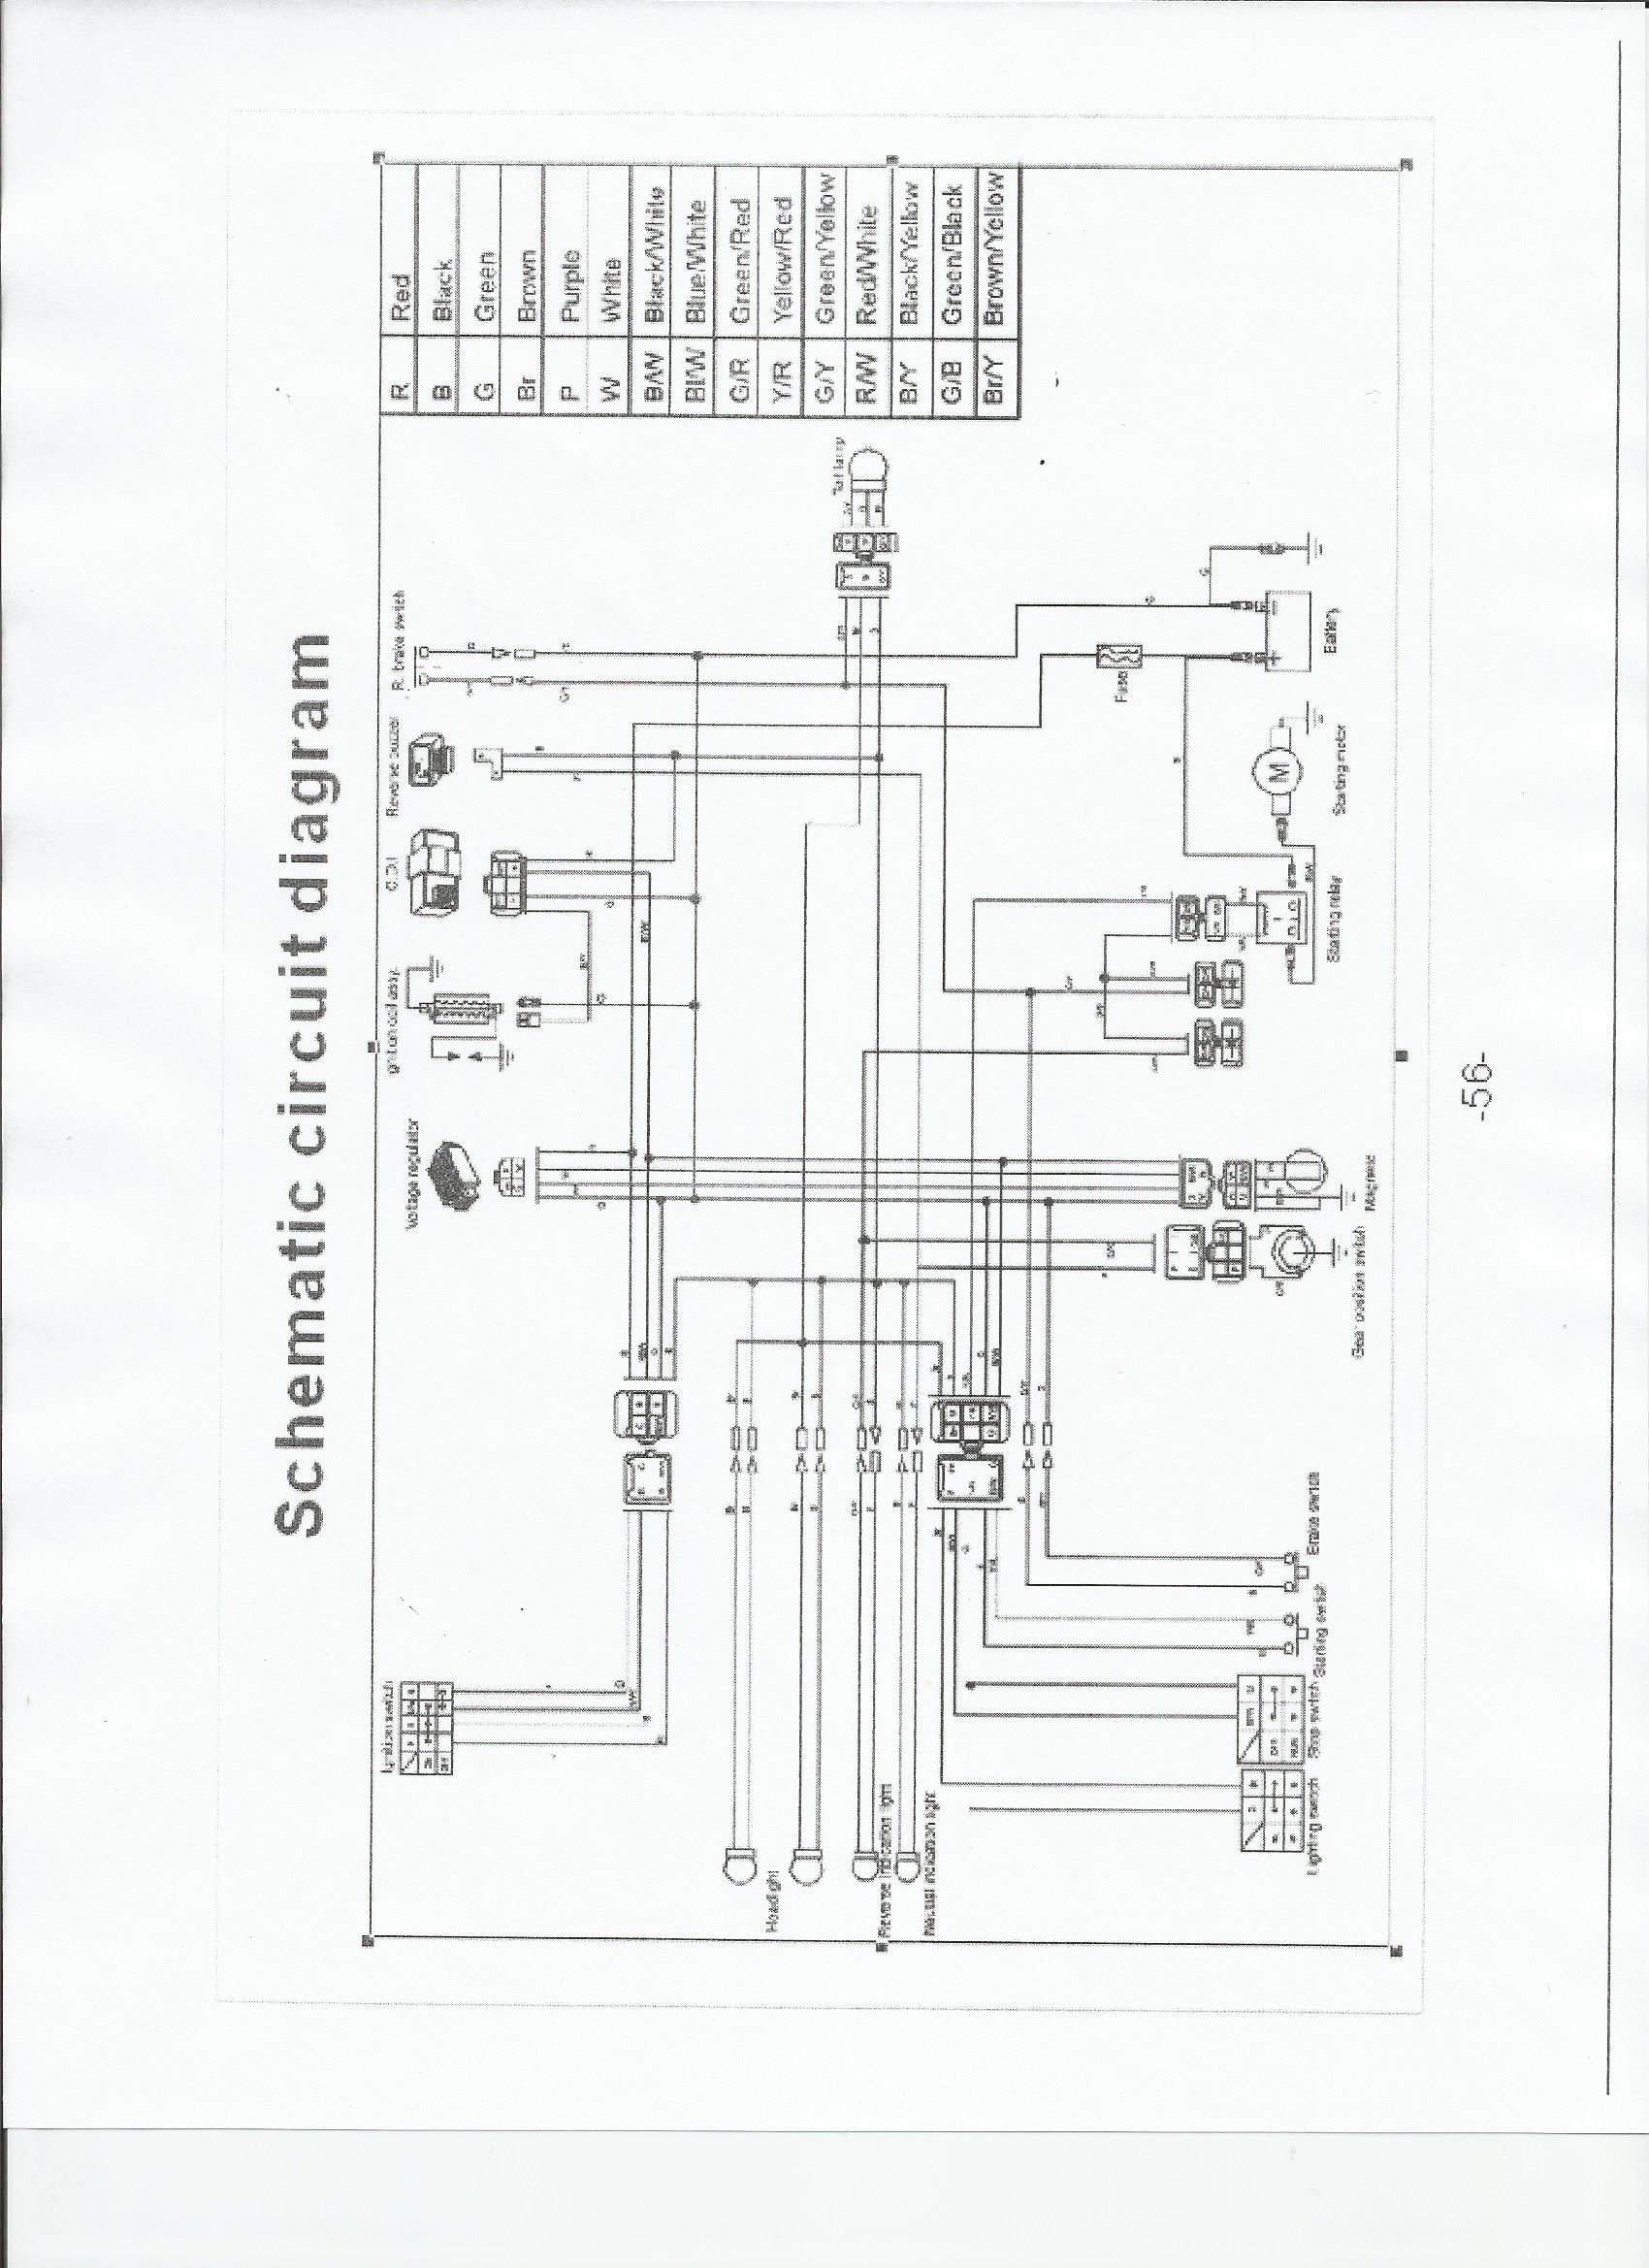 tao tao wiring schematic taotao mini and youth atv wiring schematic familygokarts support on taotao 110 cc wire diagram